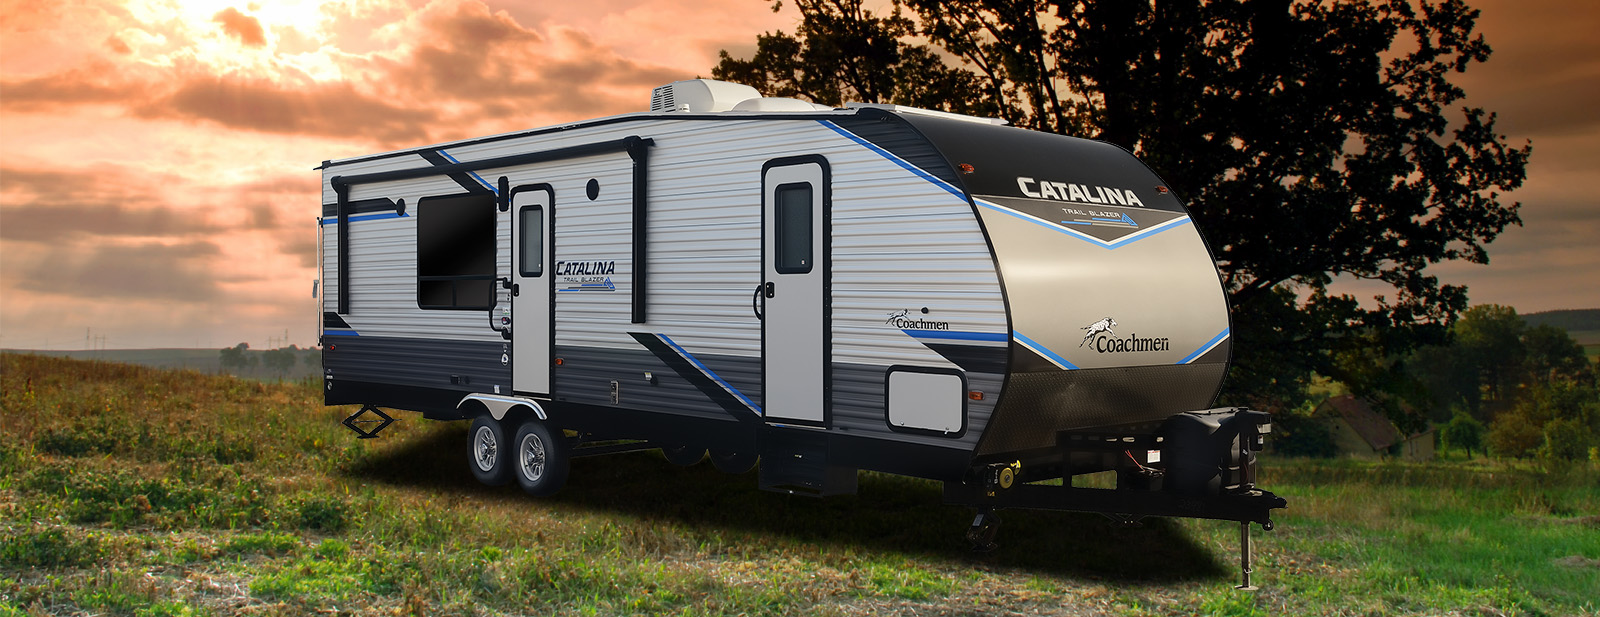 Catalina Trail Blazer Travel Trailers By Coachmen Rv